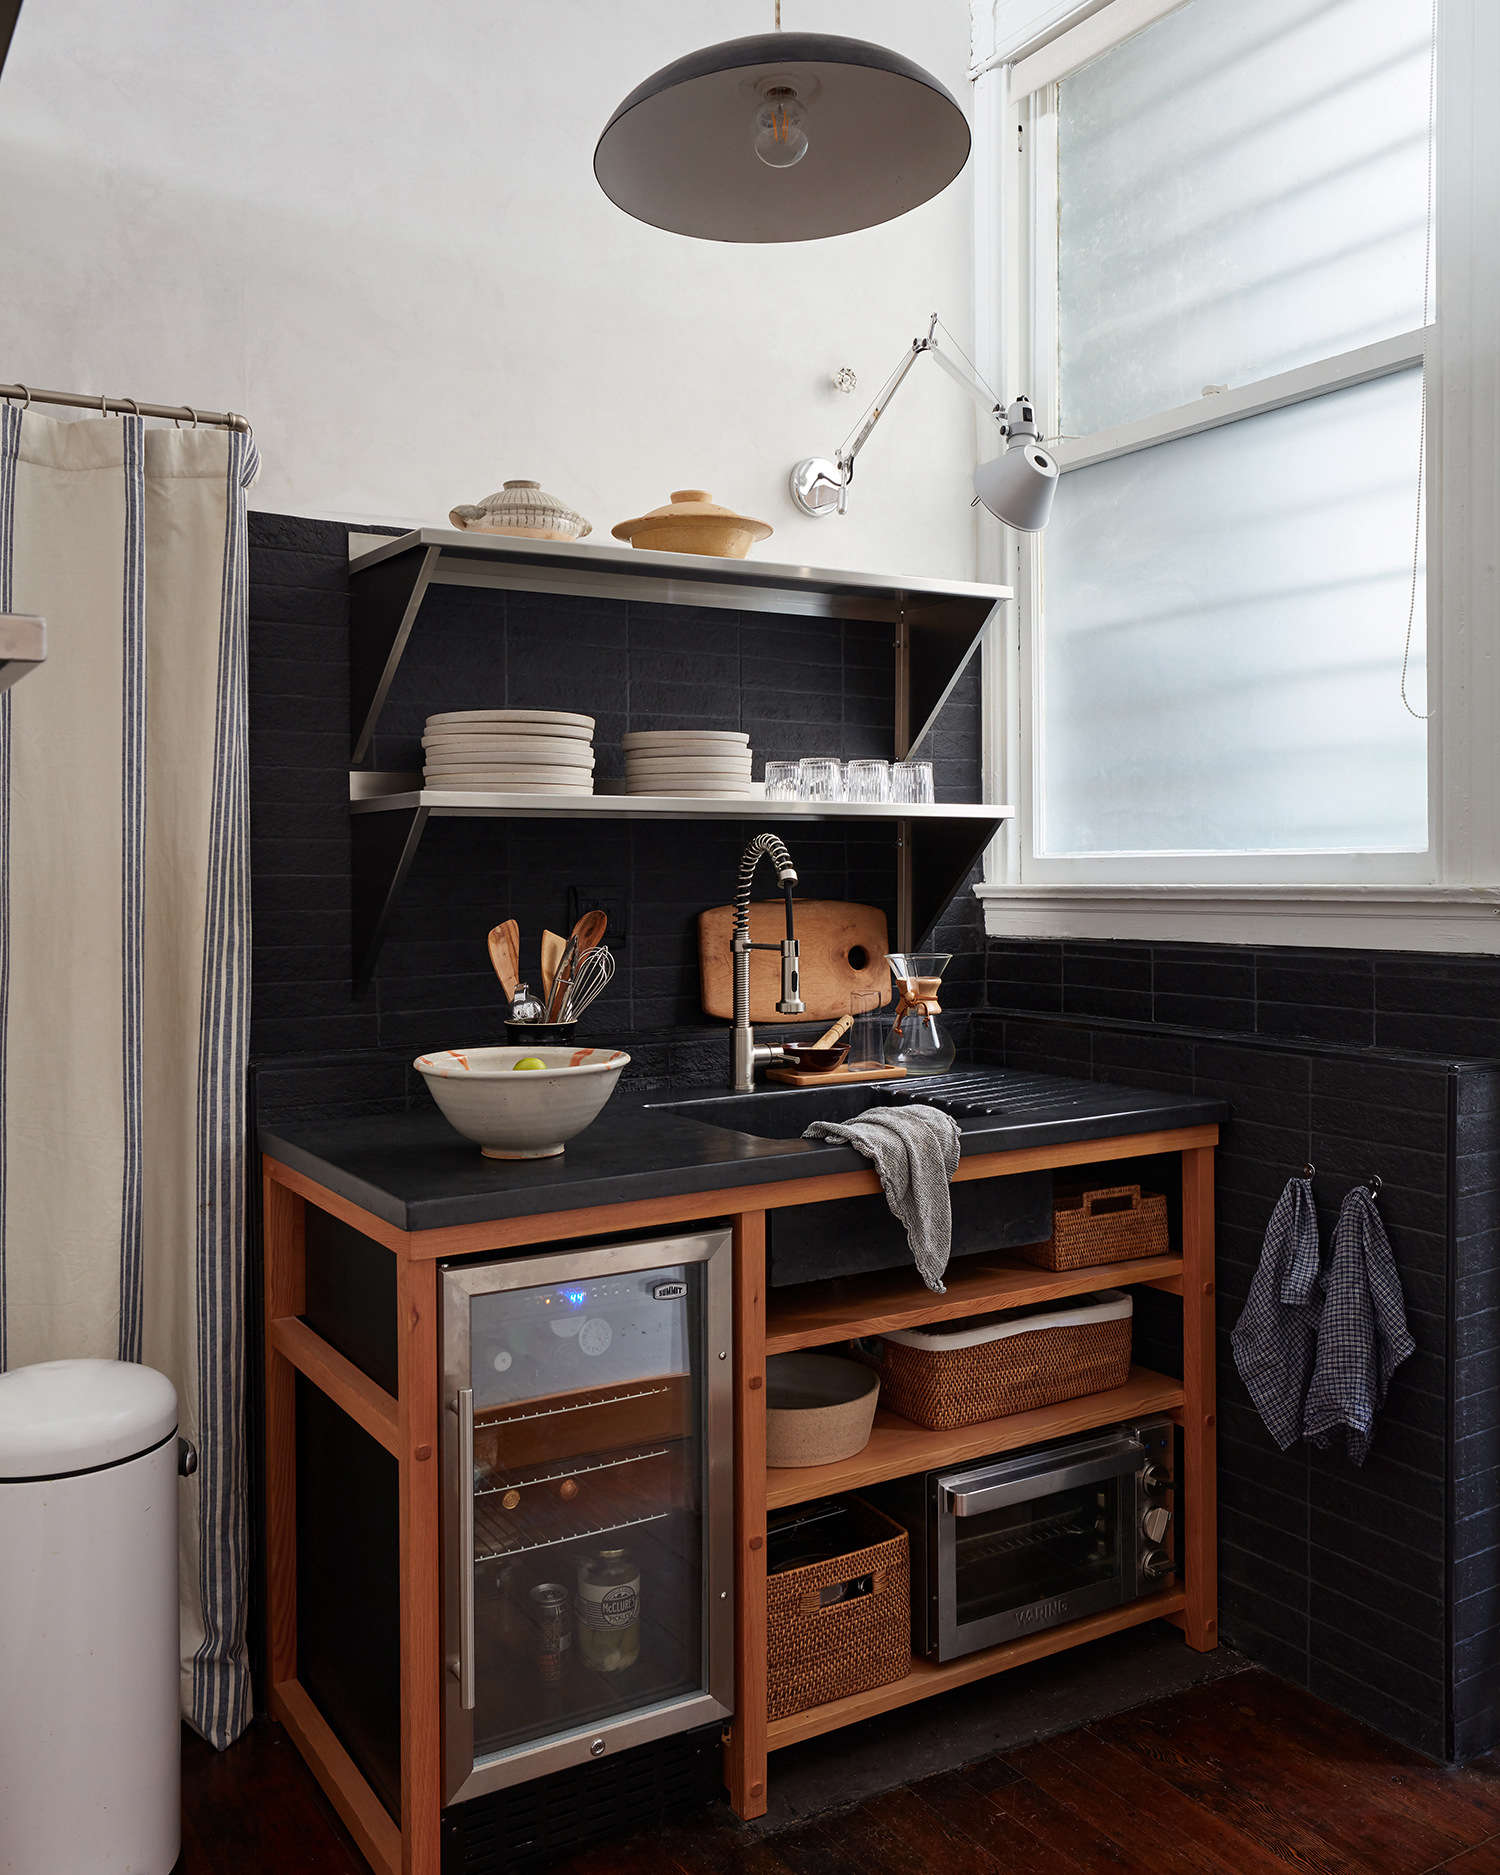 Steal This Look: A Small, Chic Kitchenette for a Creative Studio in SF - Remodelista